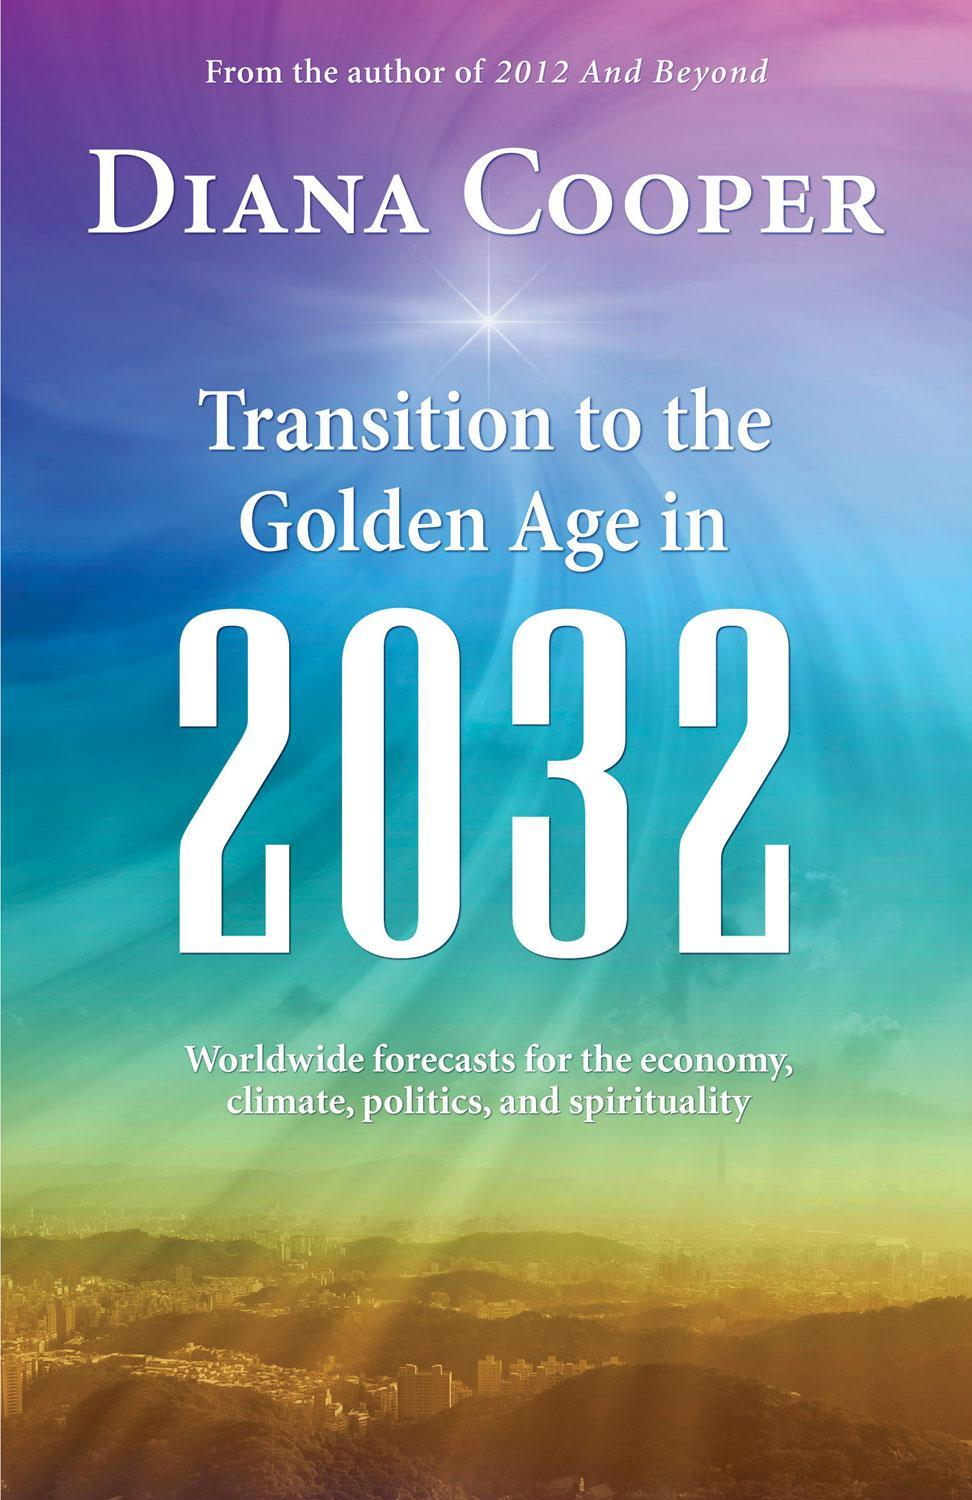 Transitions to the Golden Age in 2032: Worldwide Economic, Climate, Political, and Spiritual Forecasts